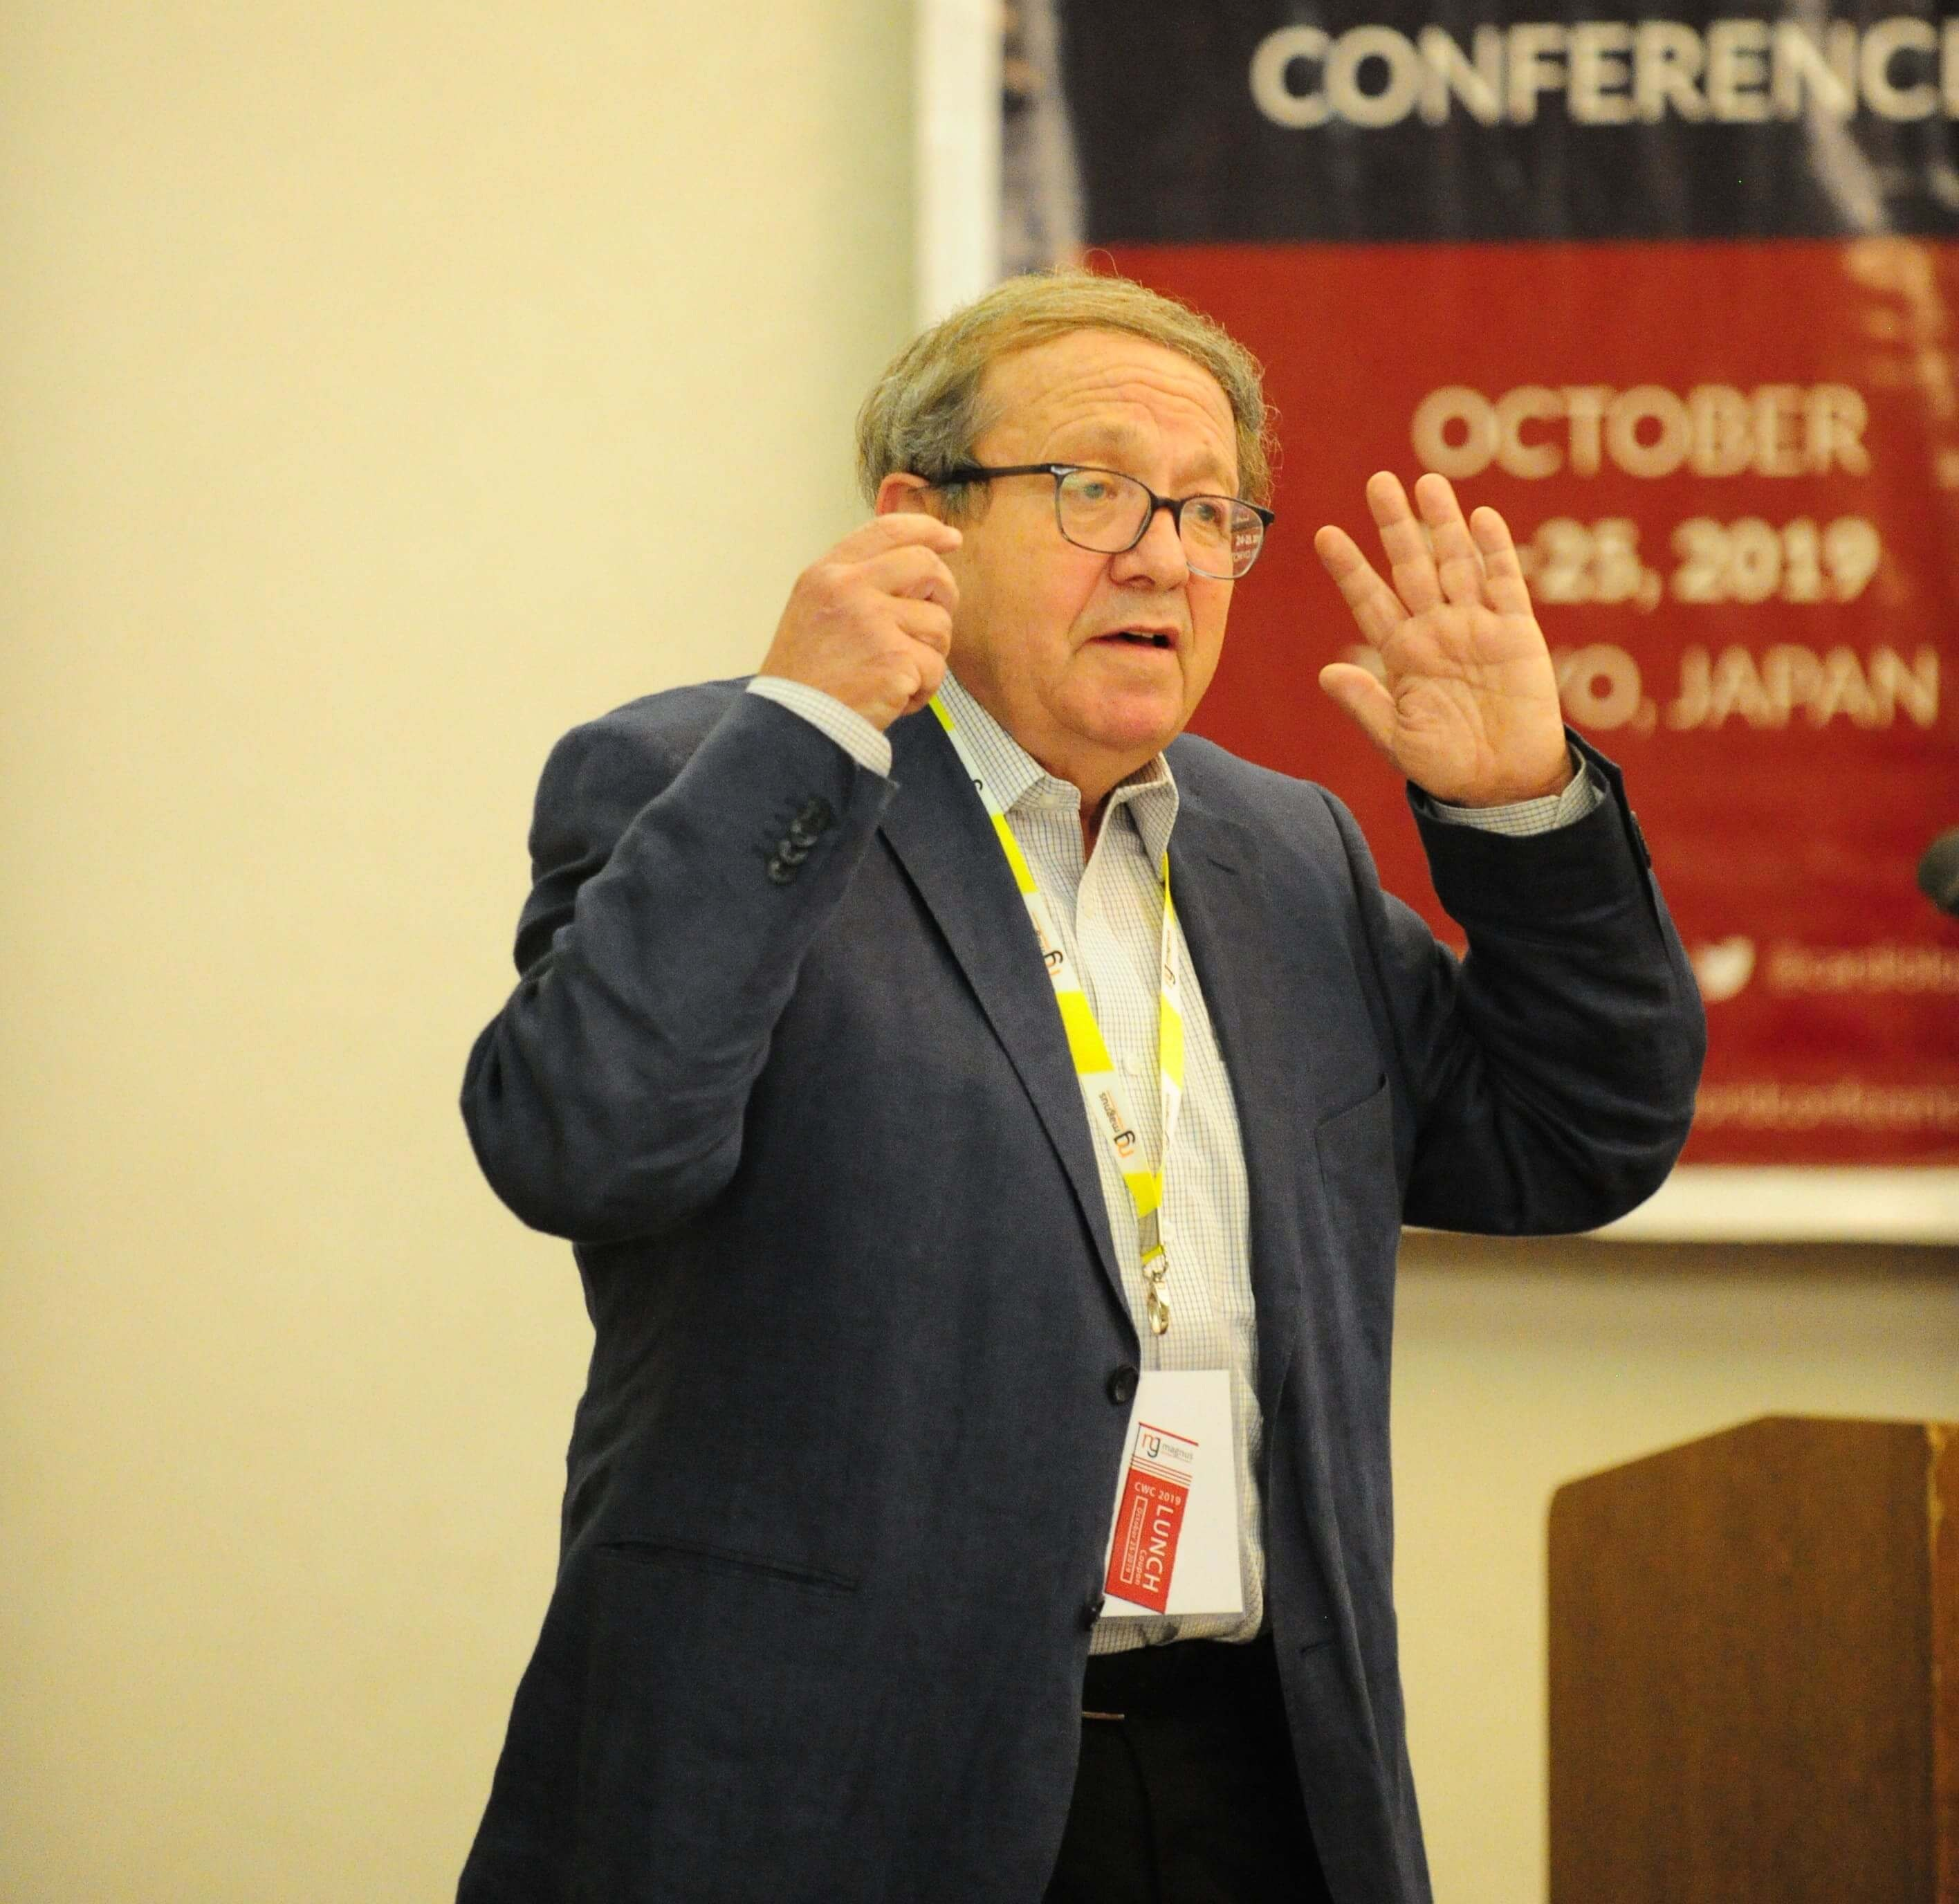 cardiology 2019 conference gallery